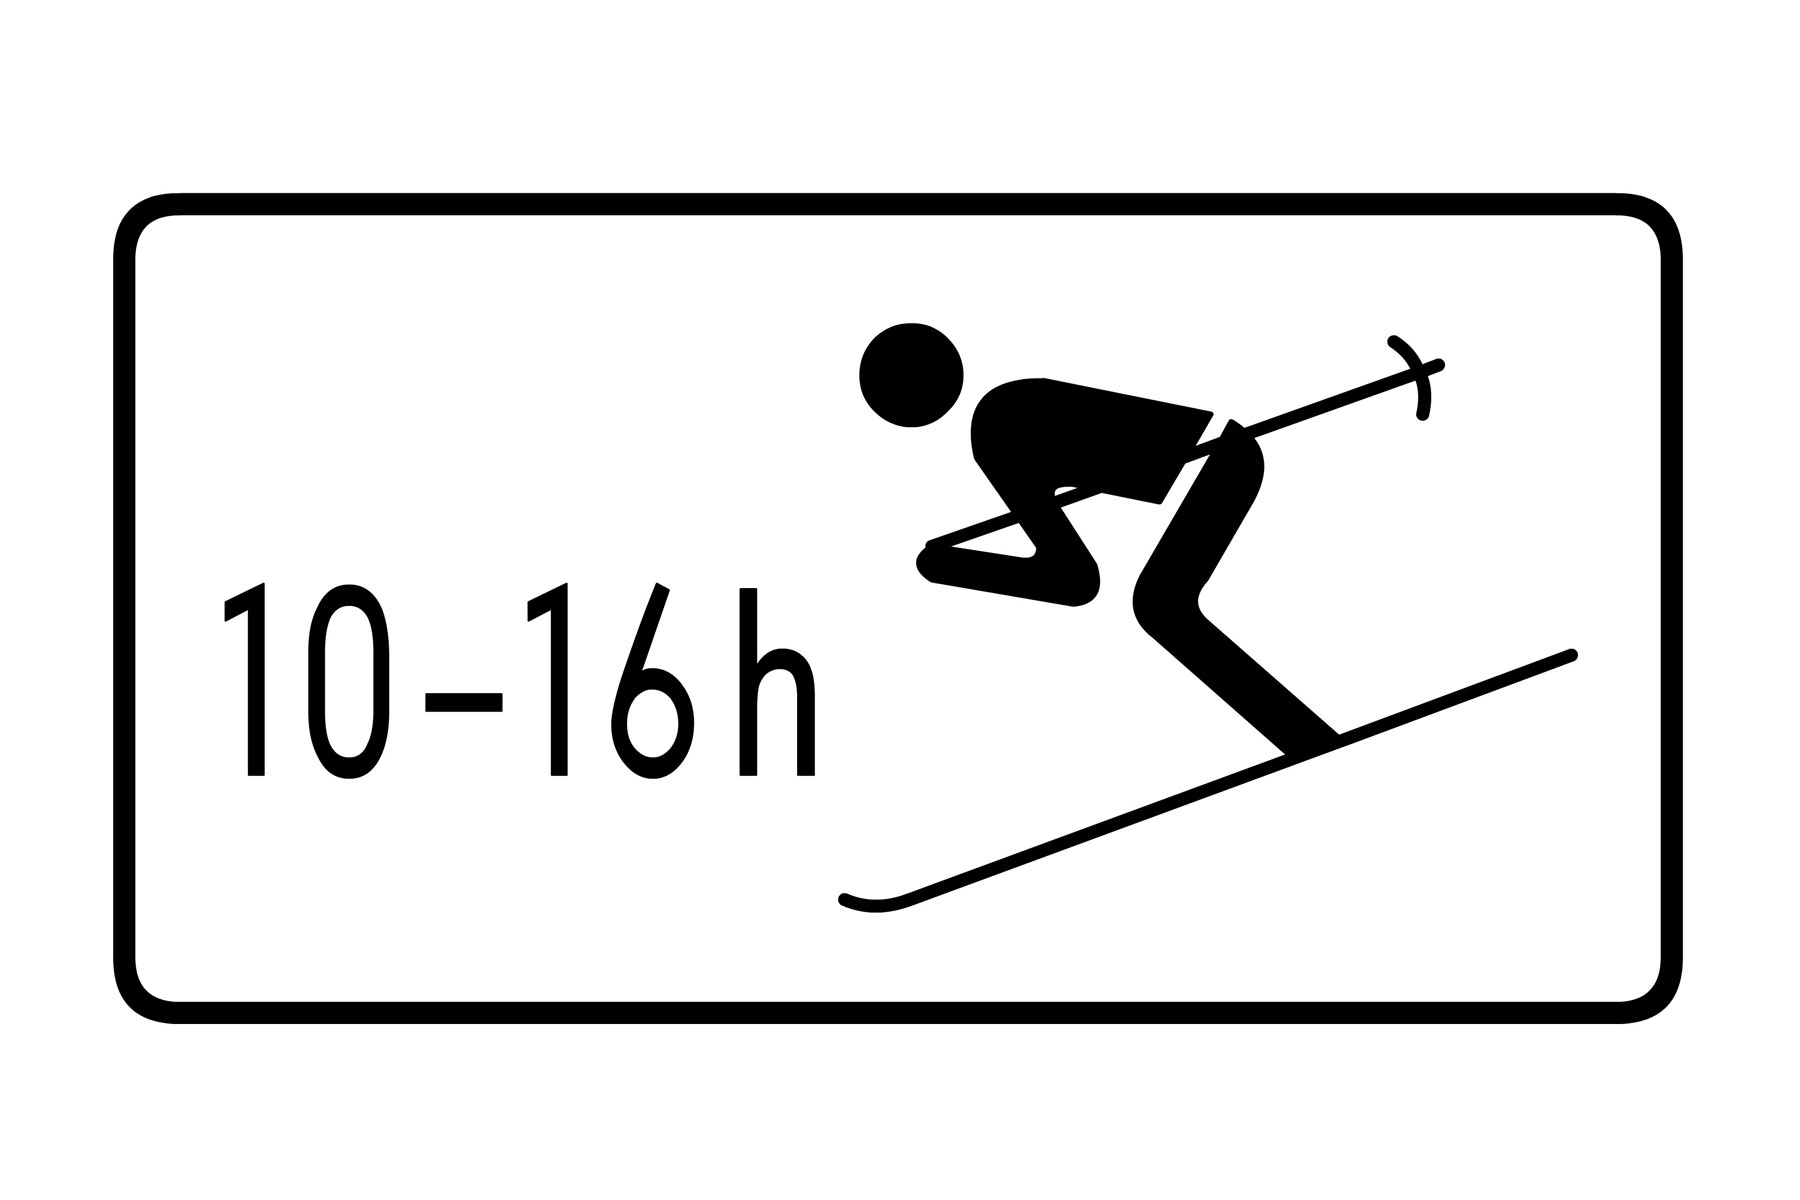 Skiers allowed to cross road Germany